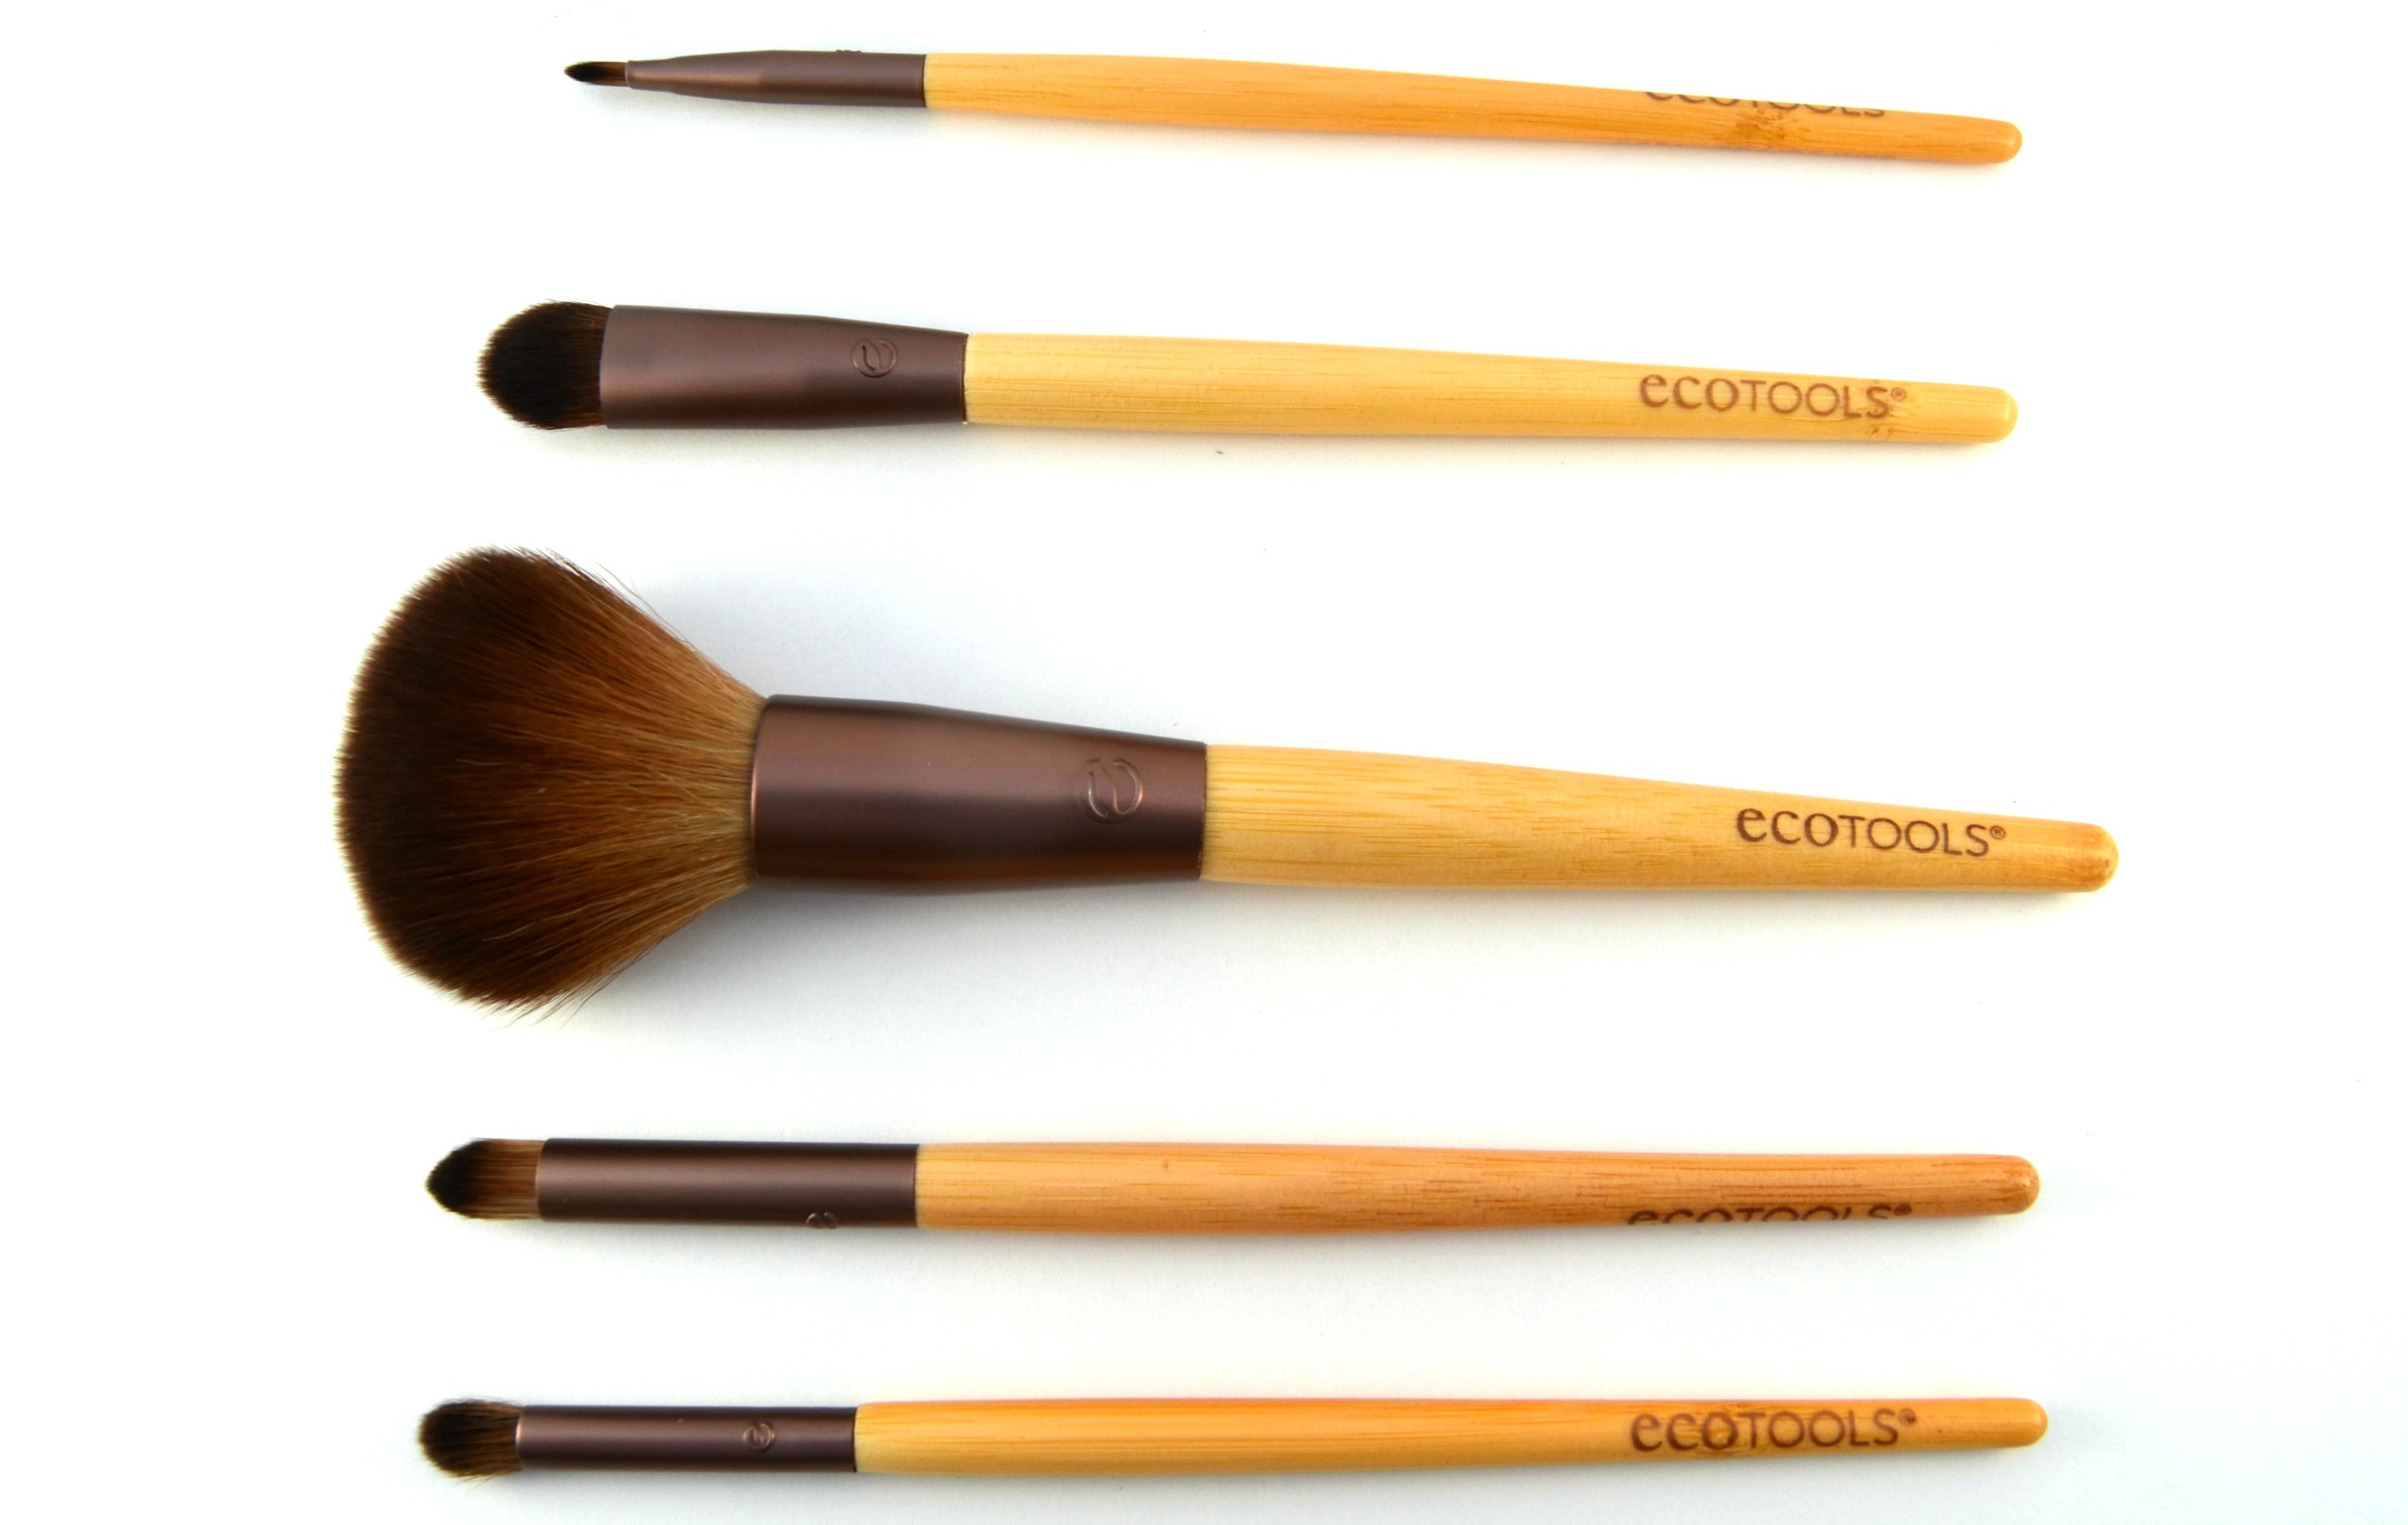 Ecotool brush